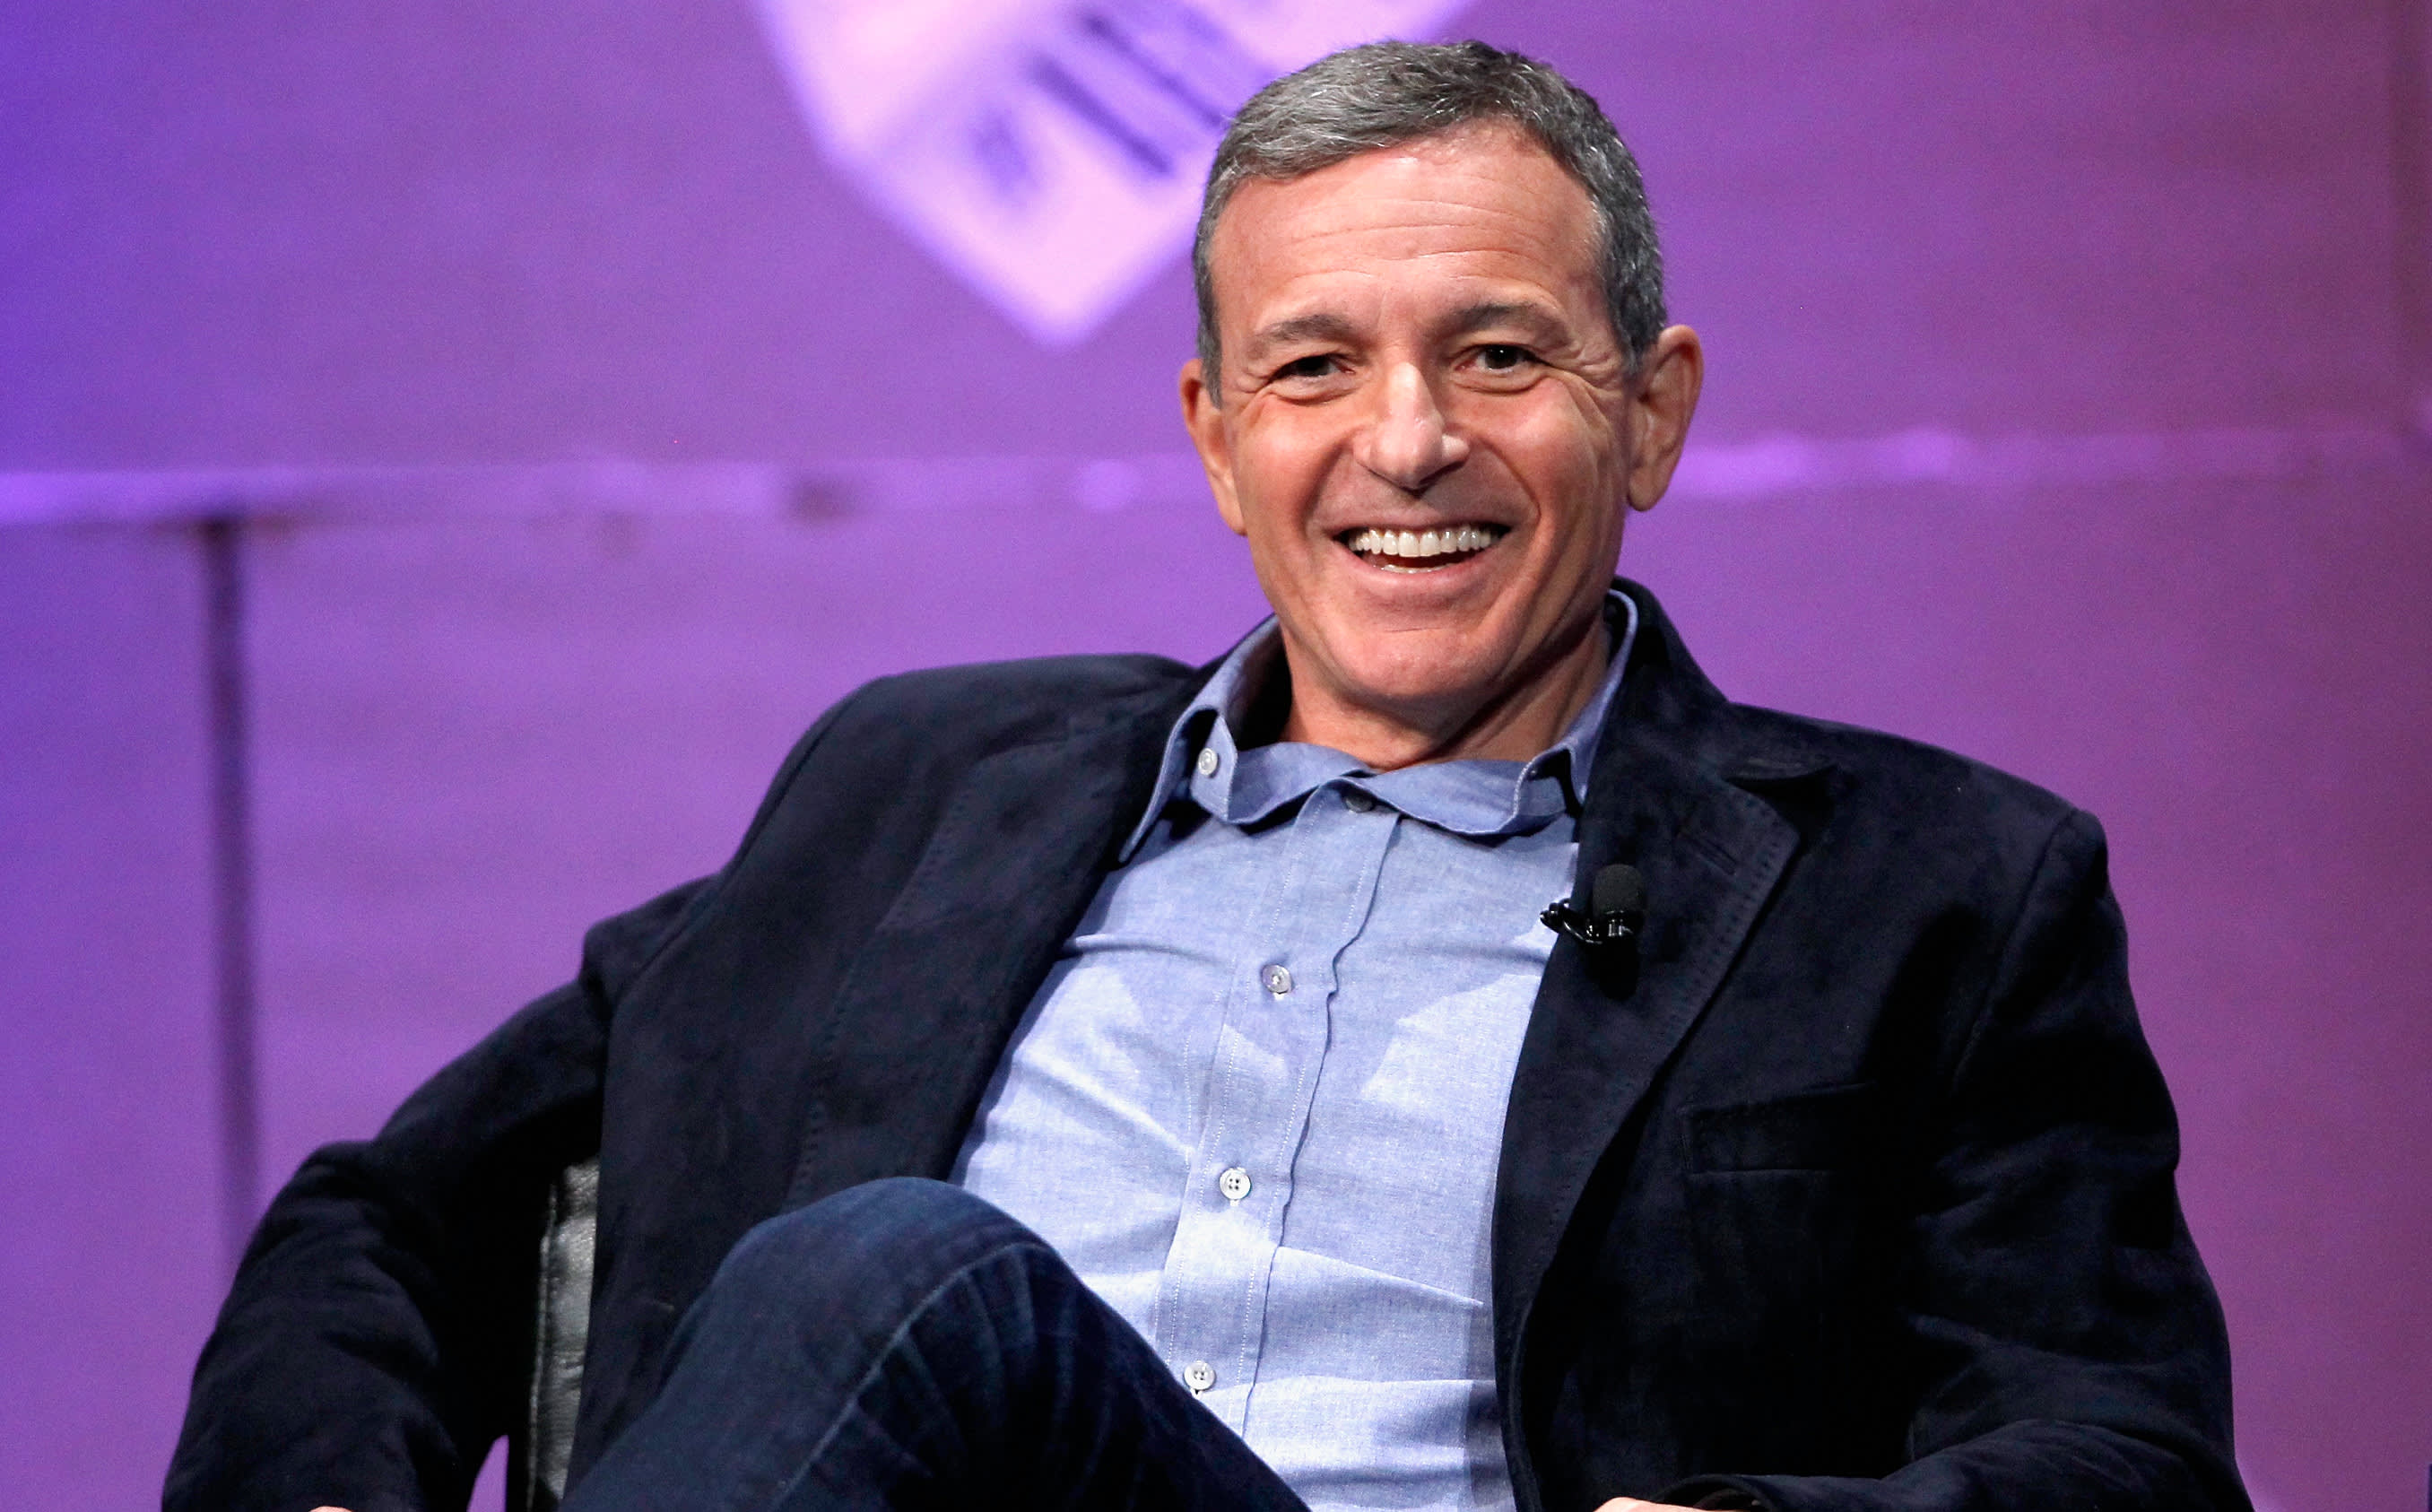 Disney's Bob Iger named Time's businessperson of the year